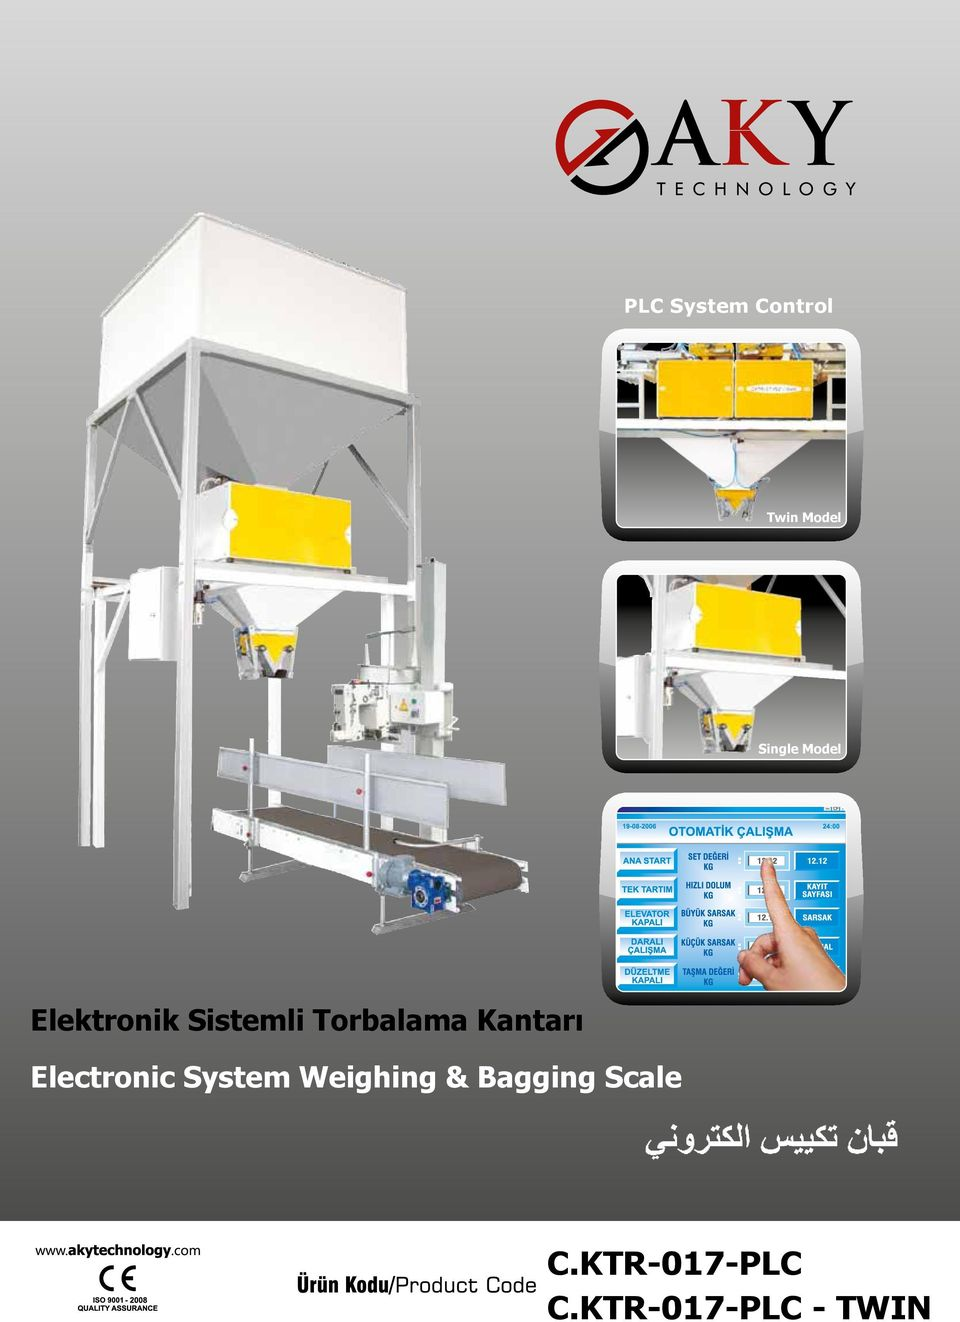 Kantarı Electronic System Weighing &